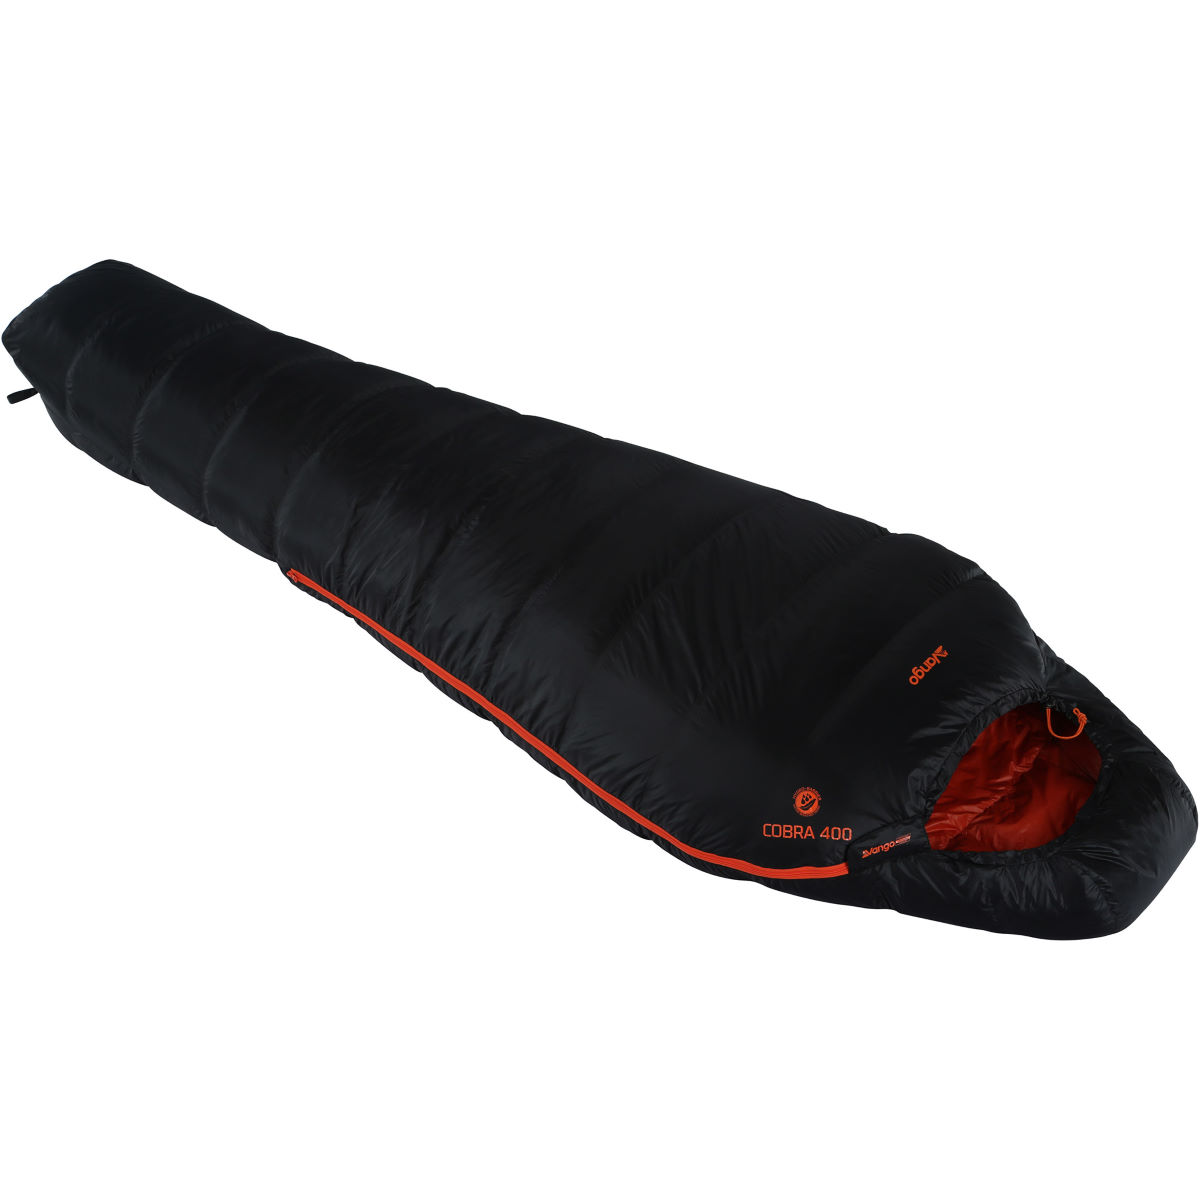 Vango Vango Cobra 400 Sleeping Bag   Sleeping Bags